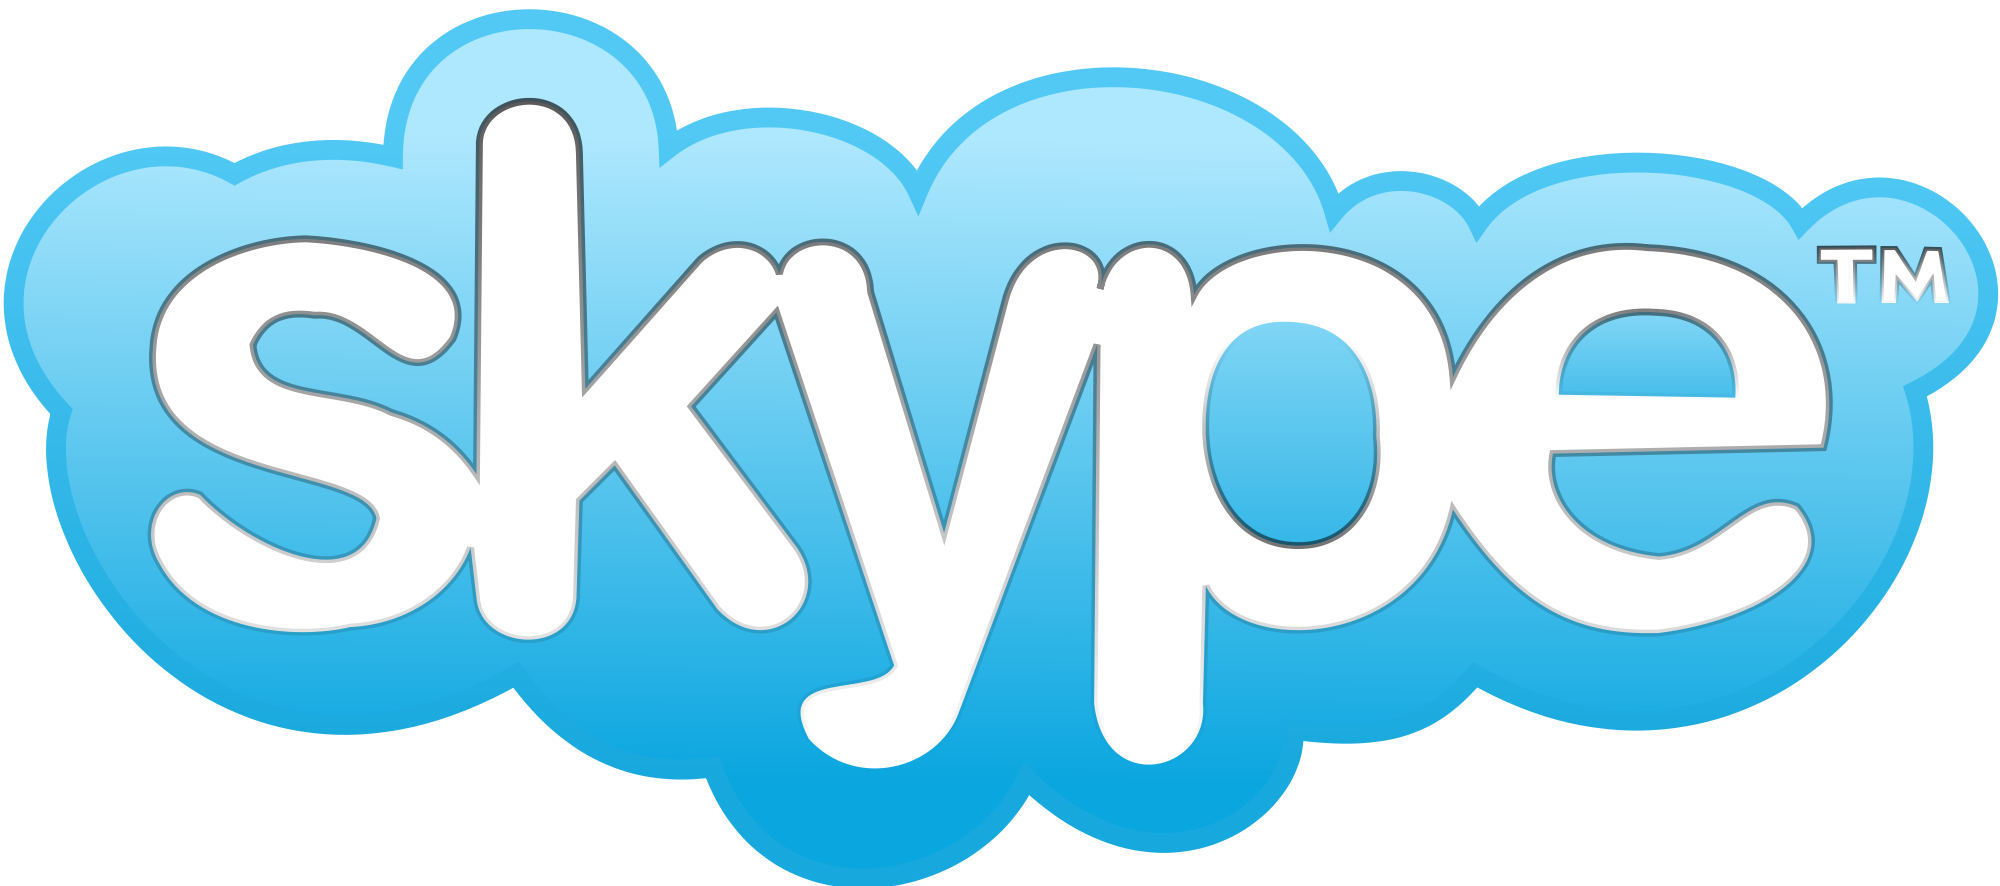 Speaker Coaching by Skype is Almost Like Being There - Speak Up ...